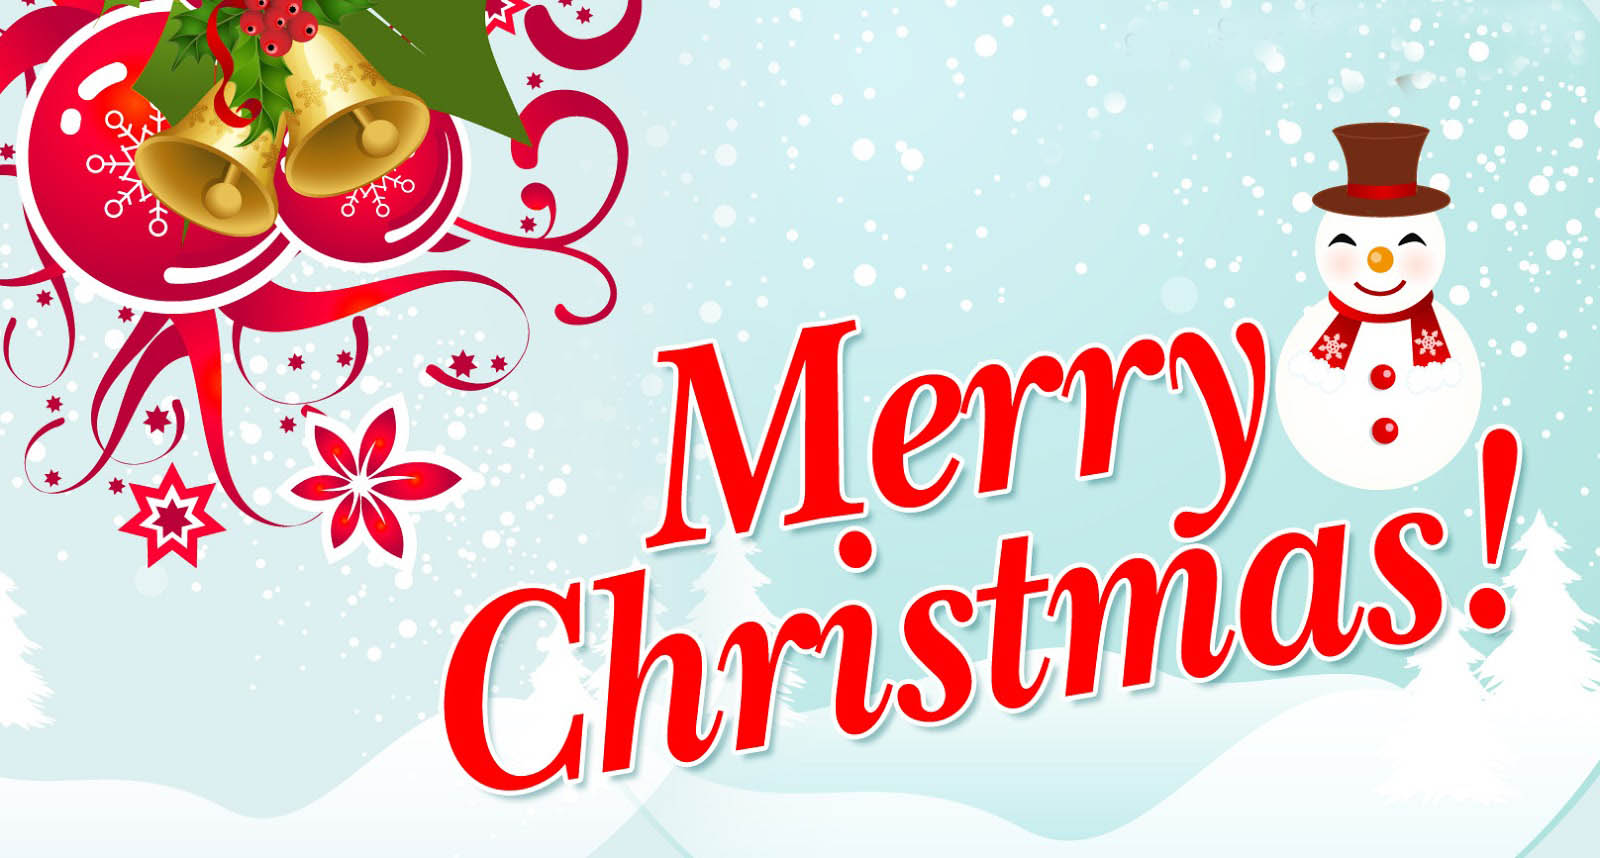 Merry Christmas and Happy New Year from Sollo Marcomms | Sollo Marcomms